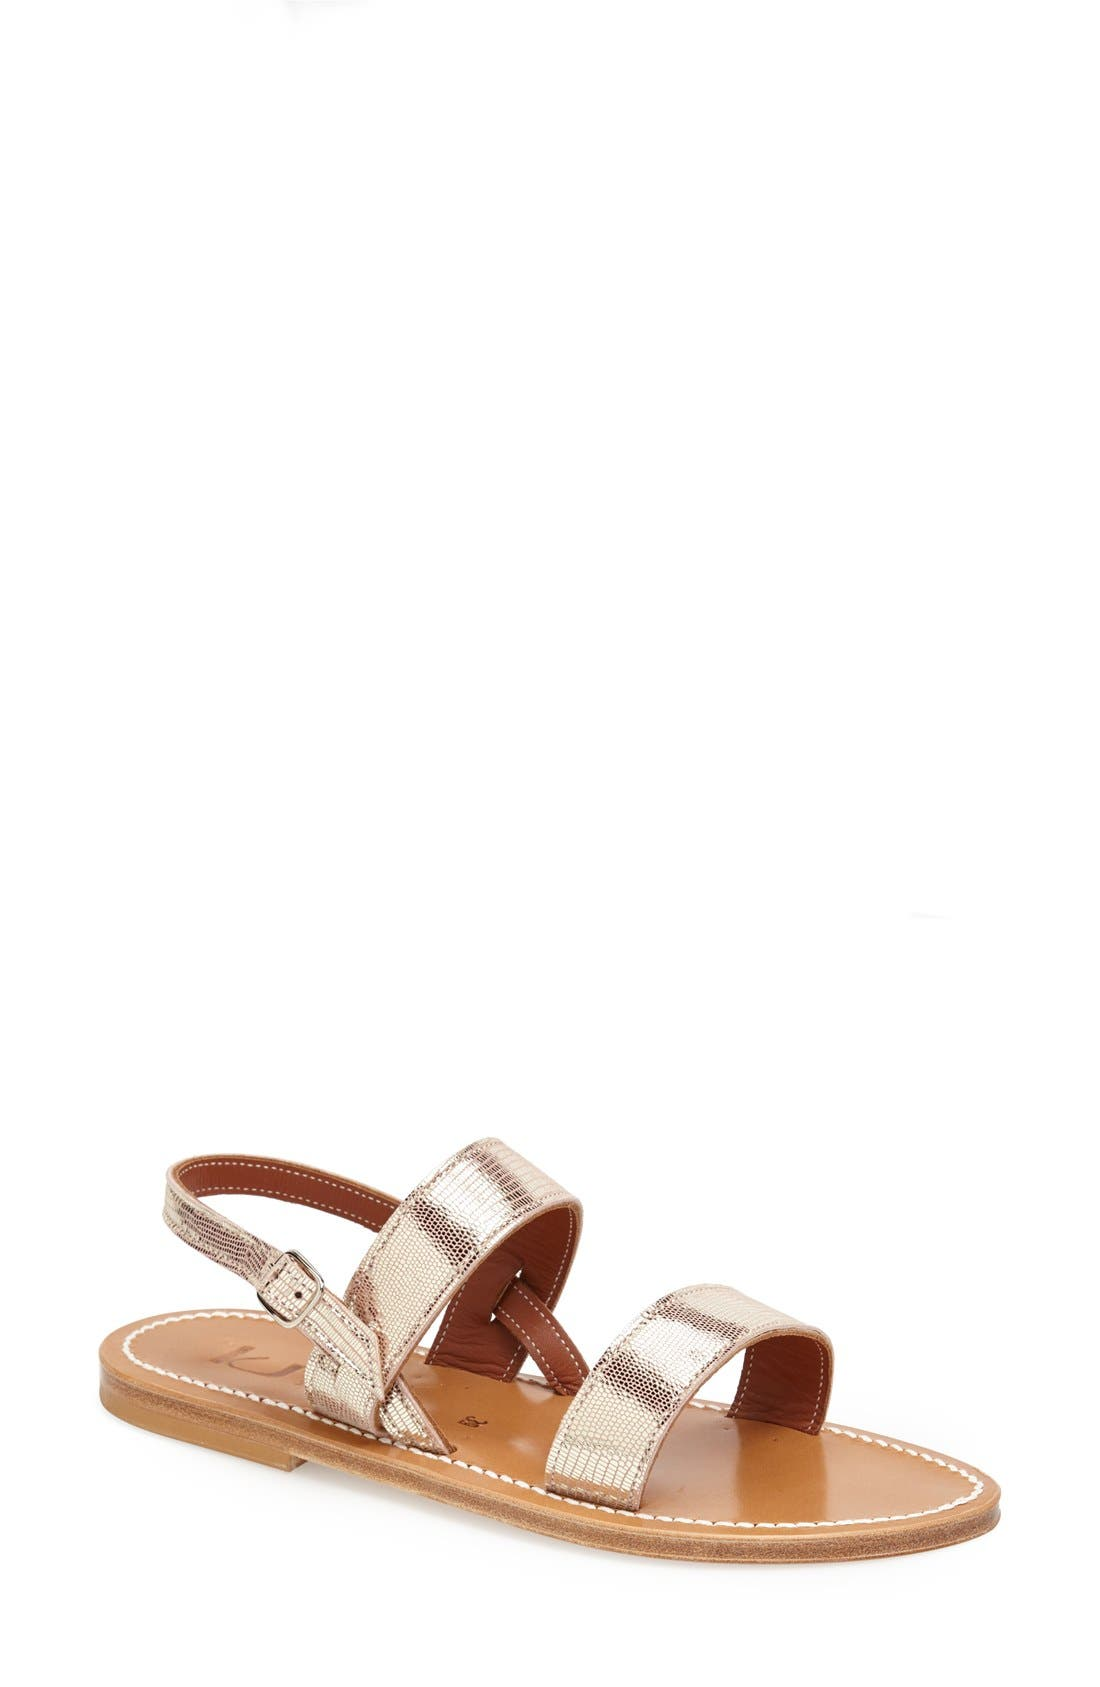 Alternate Image 1 Selected - K.Jacques St. Tropez 'Barigoule' Sandal (Women)